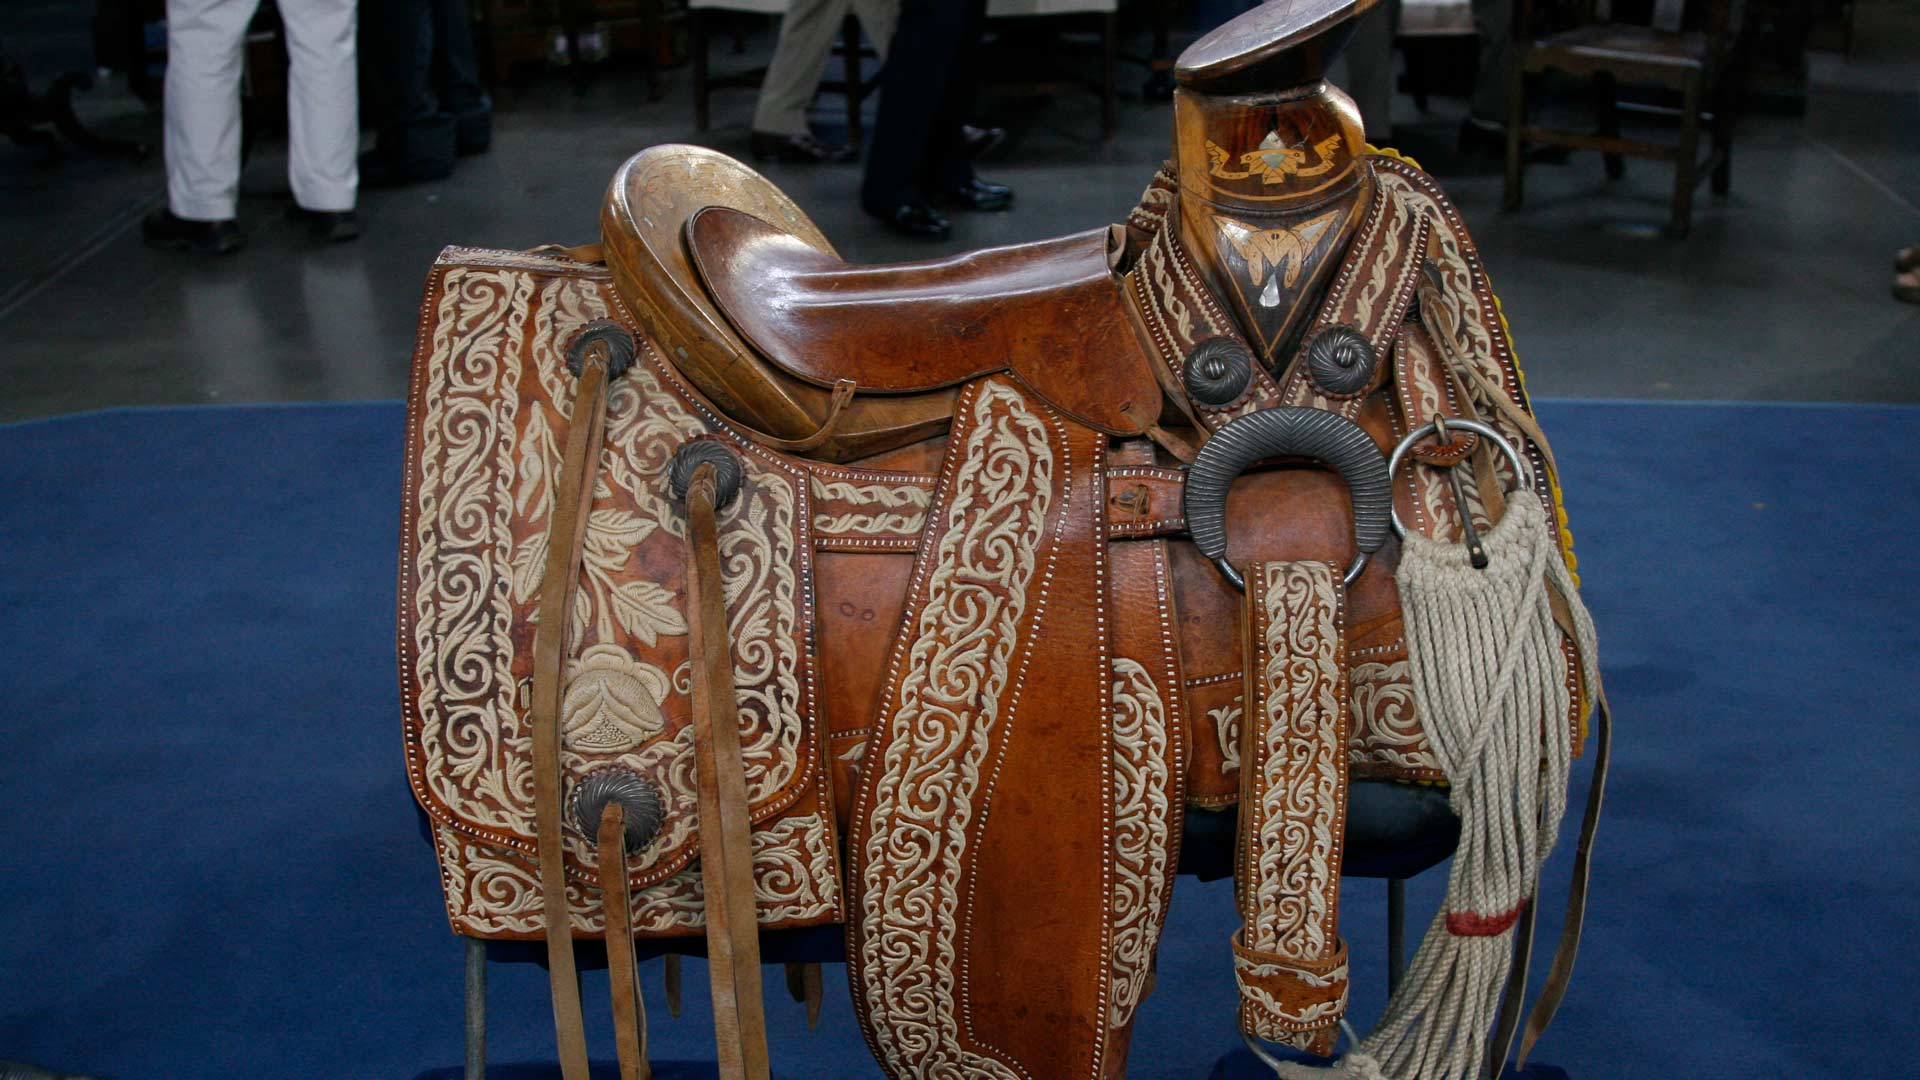 A Mexican Charro saddle, ca. 1940 appraised by Bruce M. Shackelford in Tucson, Arizona. Antiques Roadshow: Celebrating Latino Heritage airs Sept. 17 at 8 pm on PBS 6.